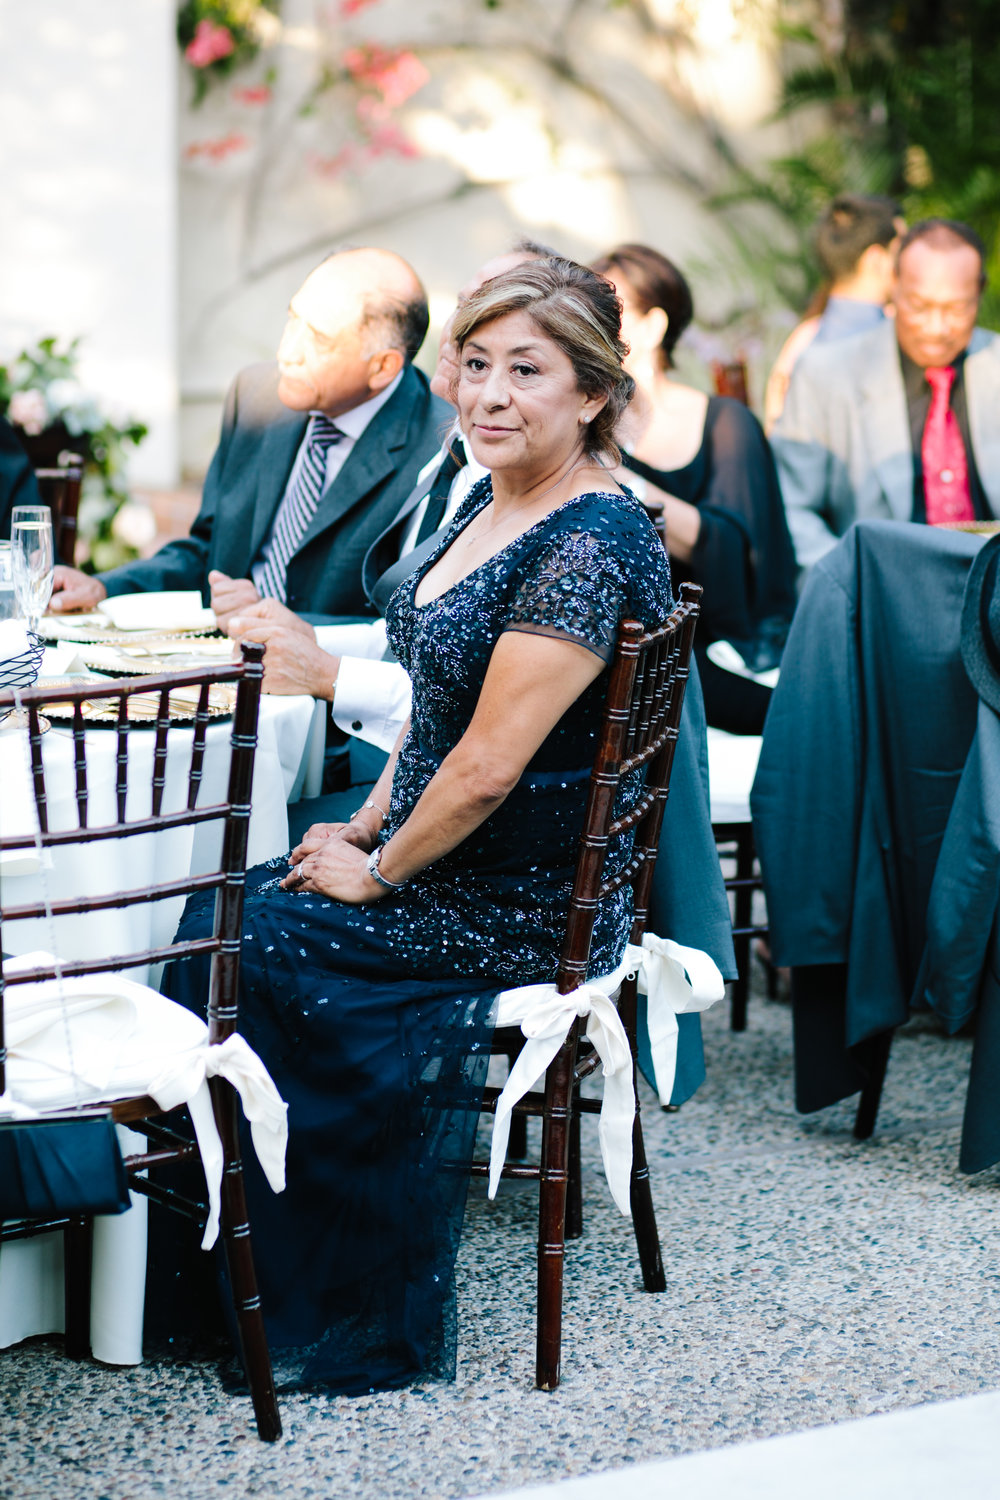 los angeles river center and gardens wedding photographer-1079.jpg